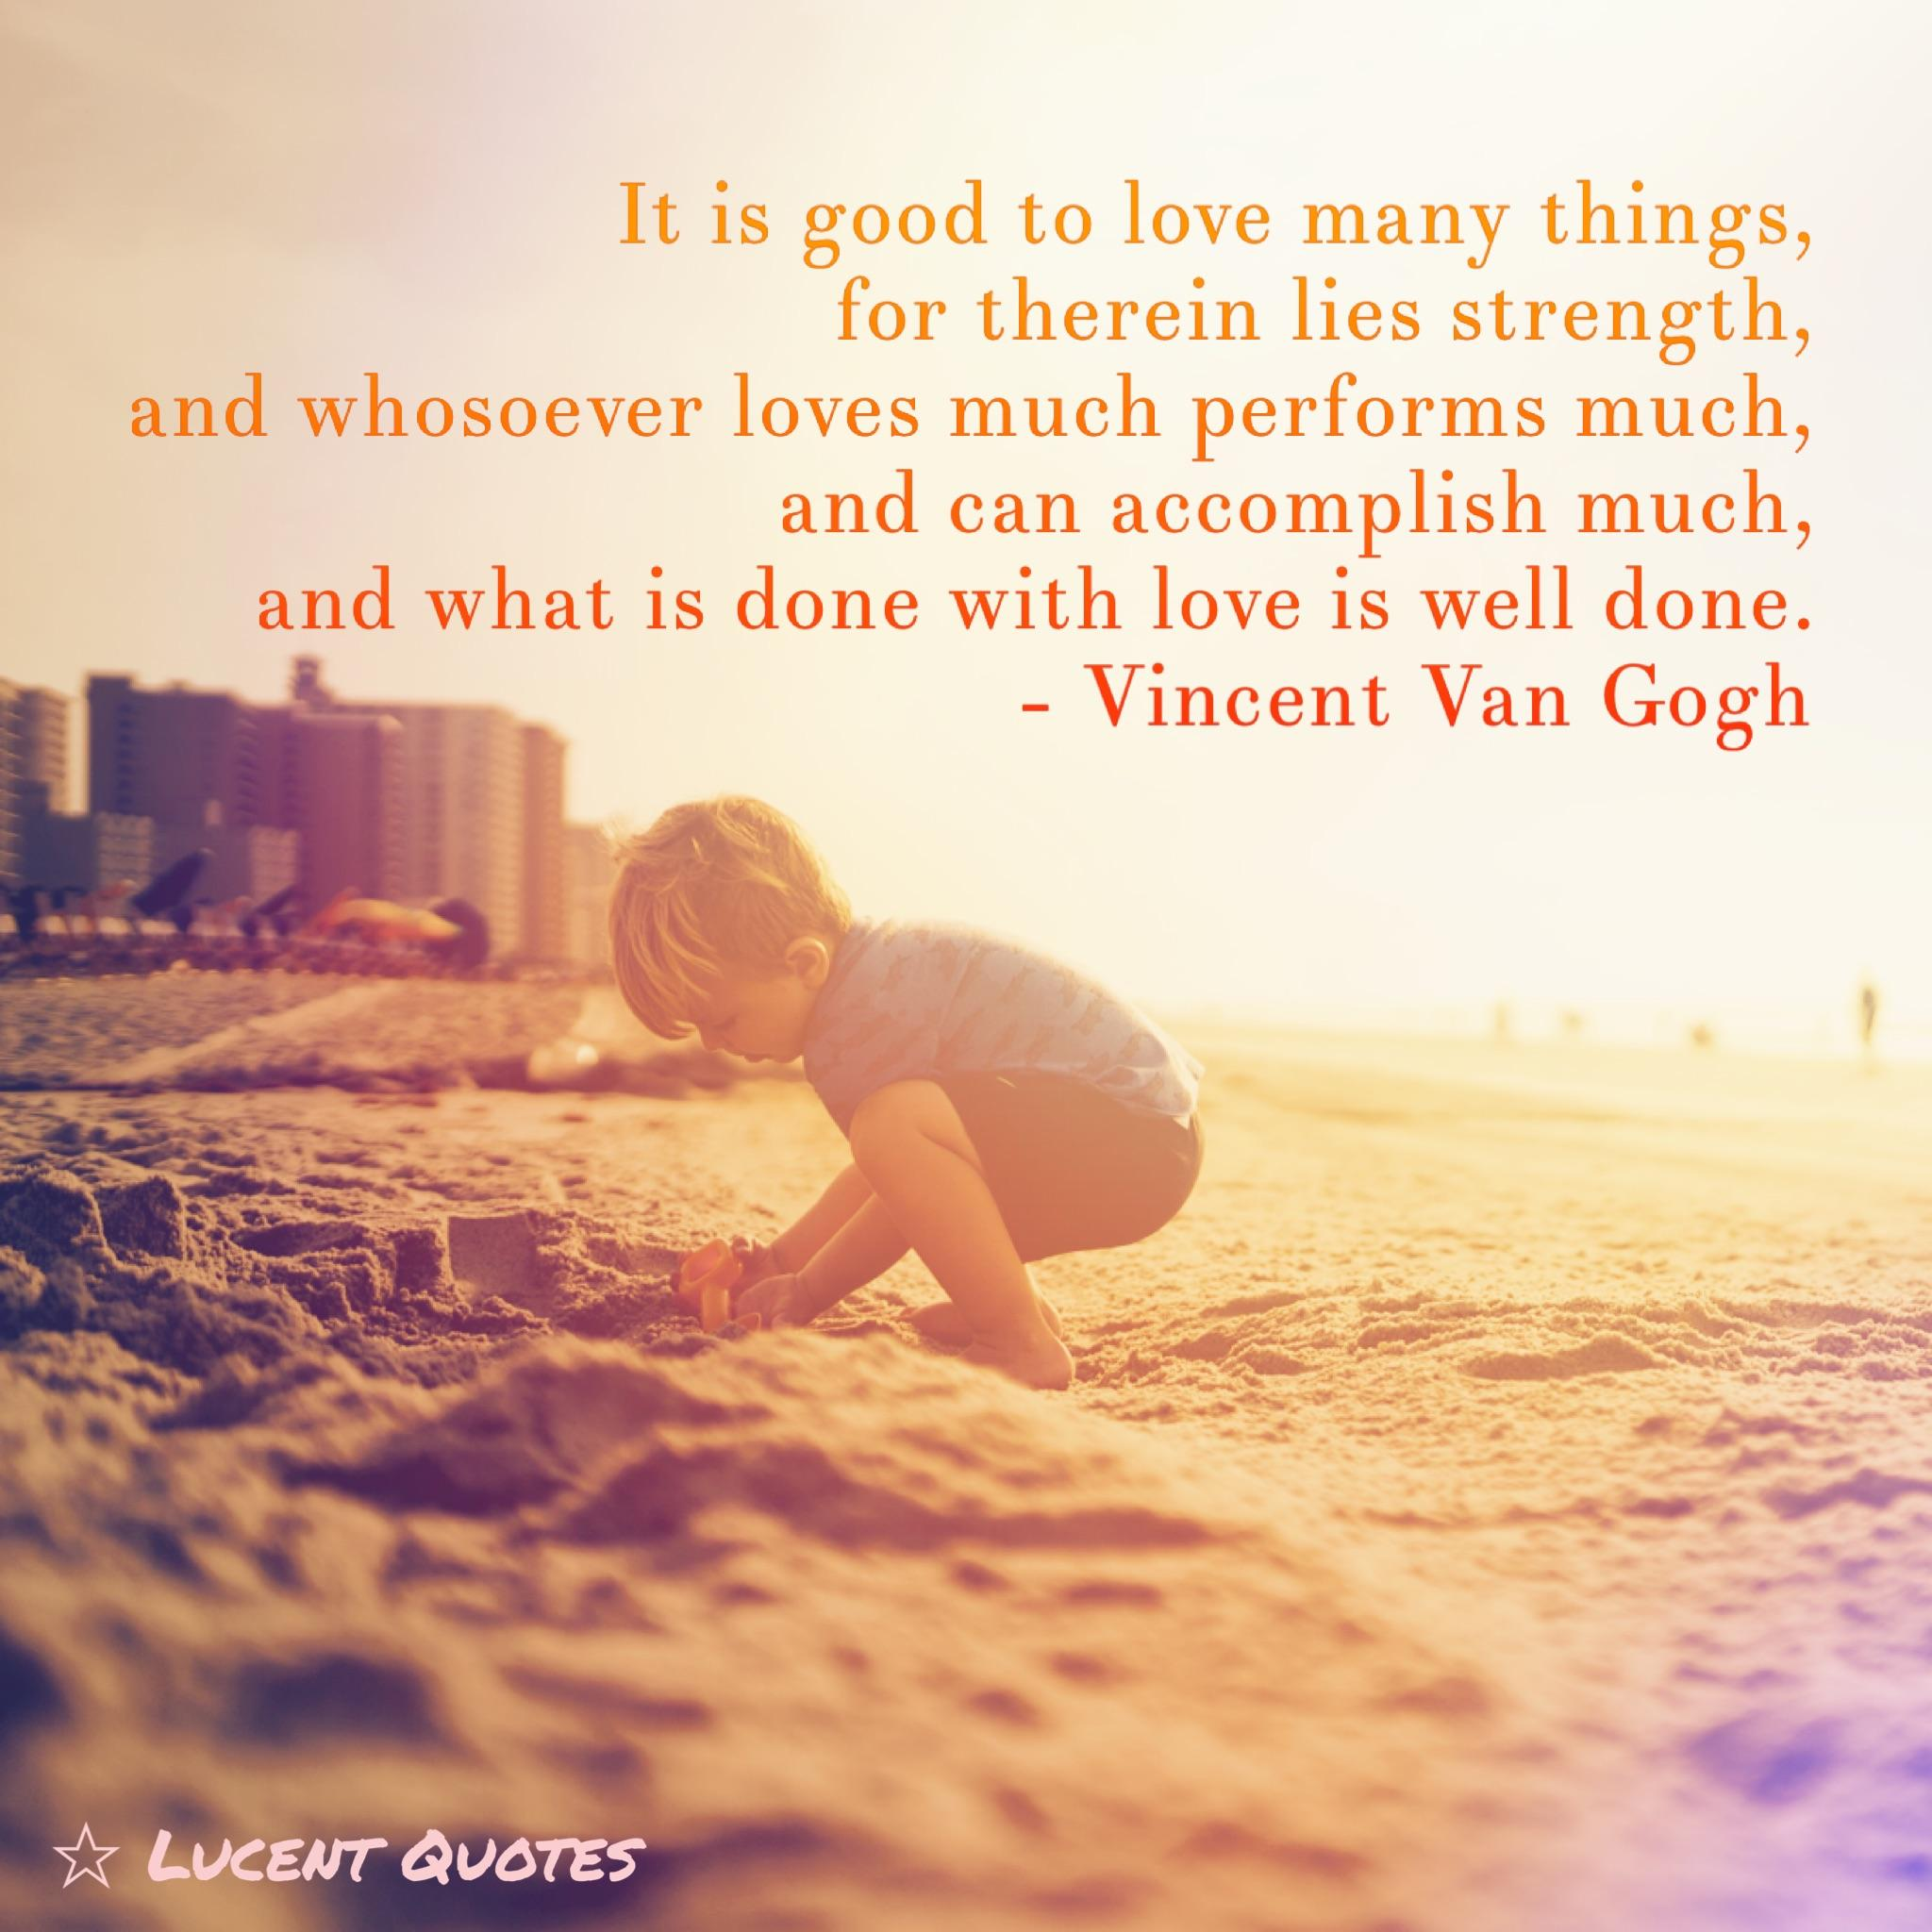 It is good to love many things, for therein lies strength, and whosoever loves much performs much, and can accomplish much, and what is done with love is well done. – Vincent Van Gogh [600×600][OC ig: Lucentquotes]